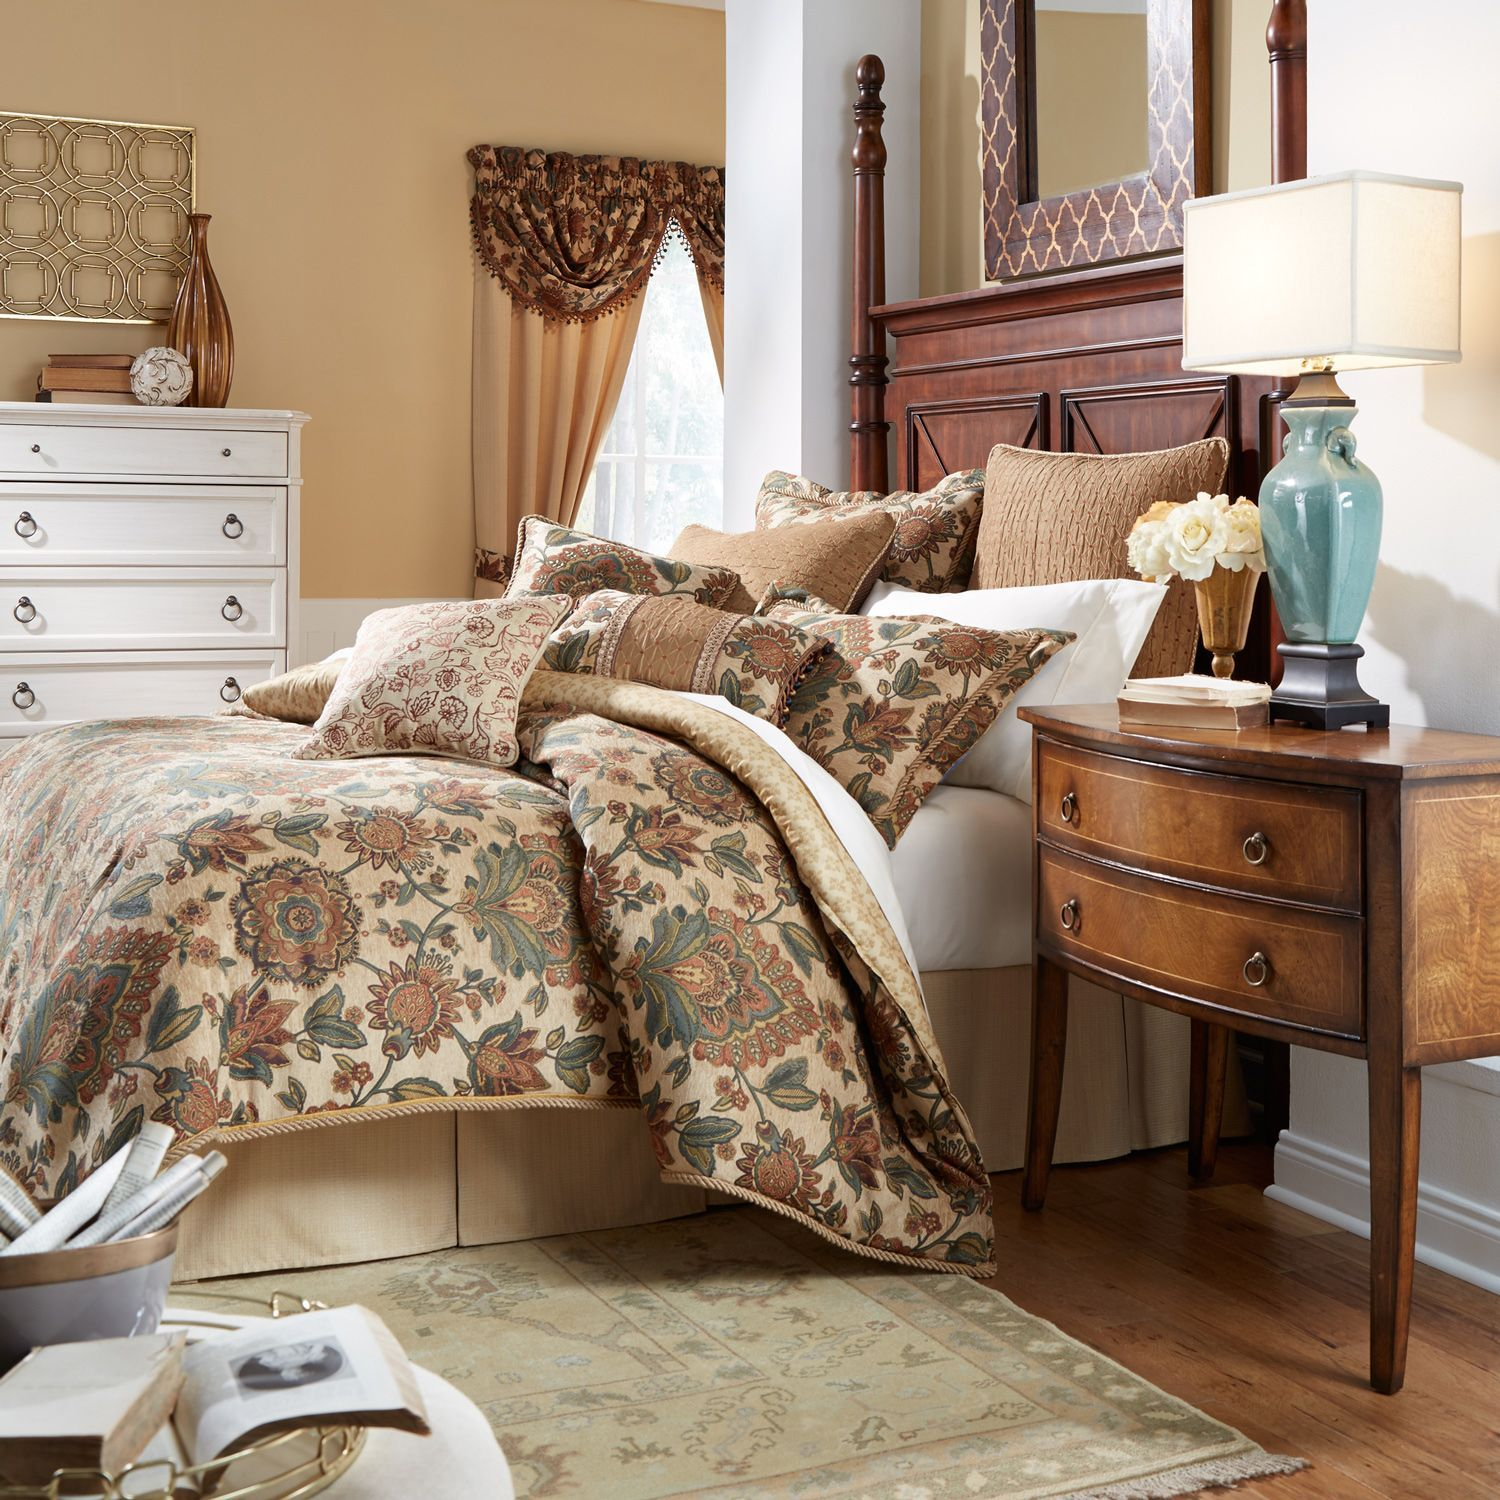 The Minka Bedding Collection Is A Traditional Multicolored - Croscill galleria king comforter set